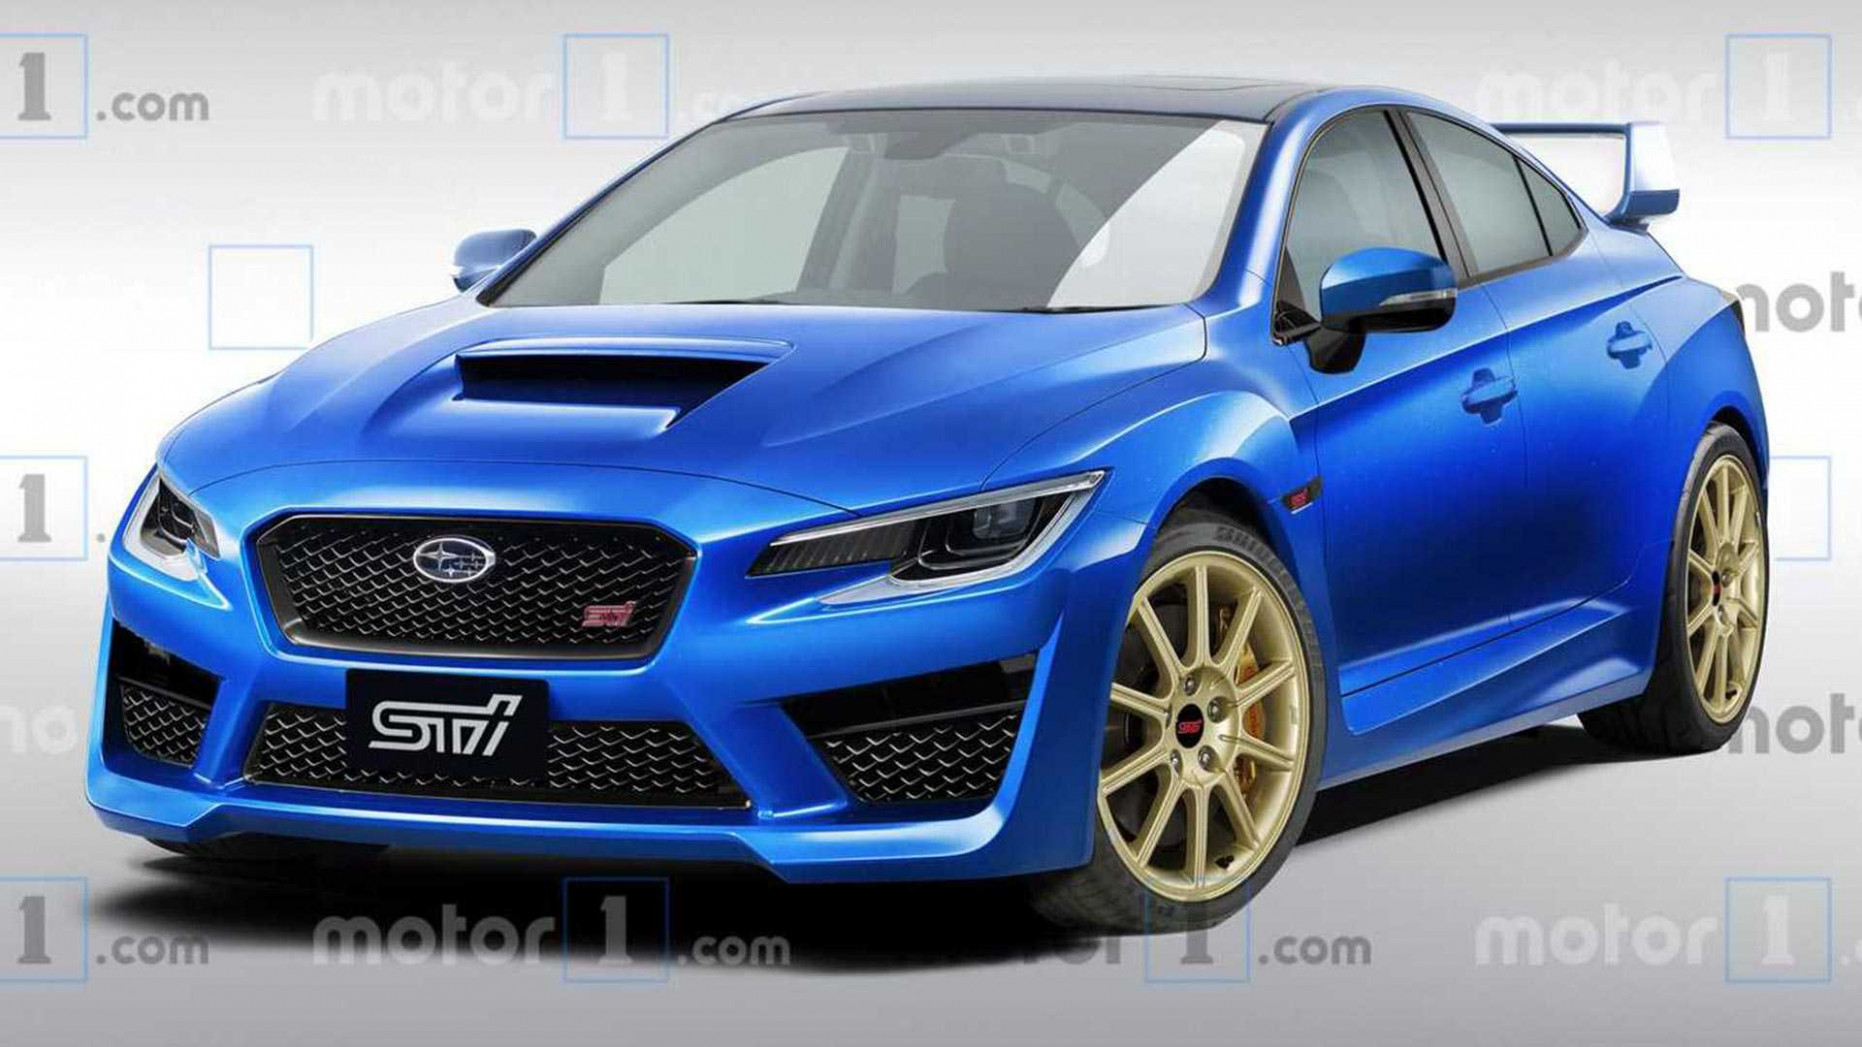 Subaru WRX STI (11): 11,11-Liter Turbo Boxer mit 1100 PS? - 2020 subaru new vehicles